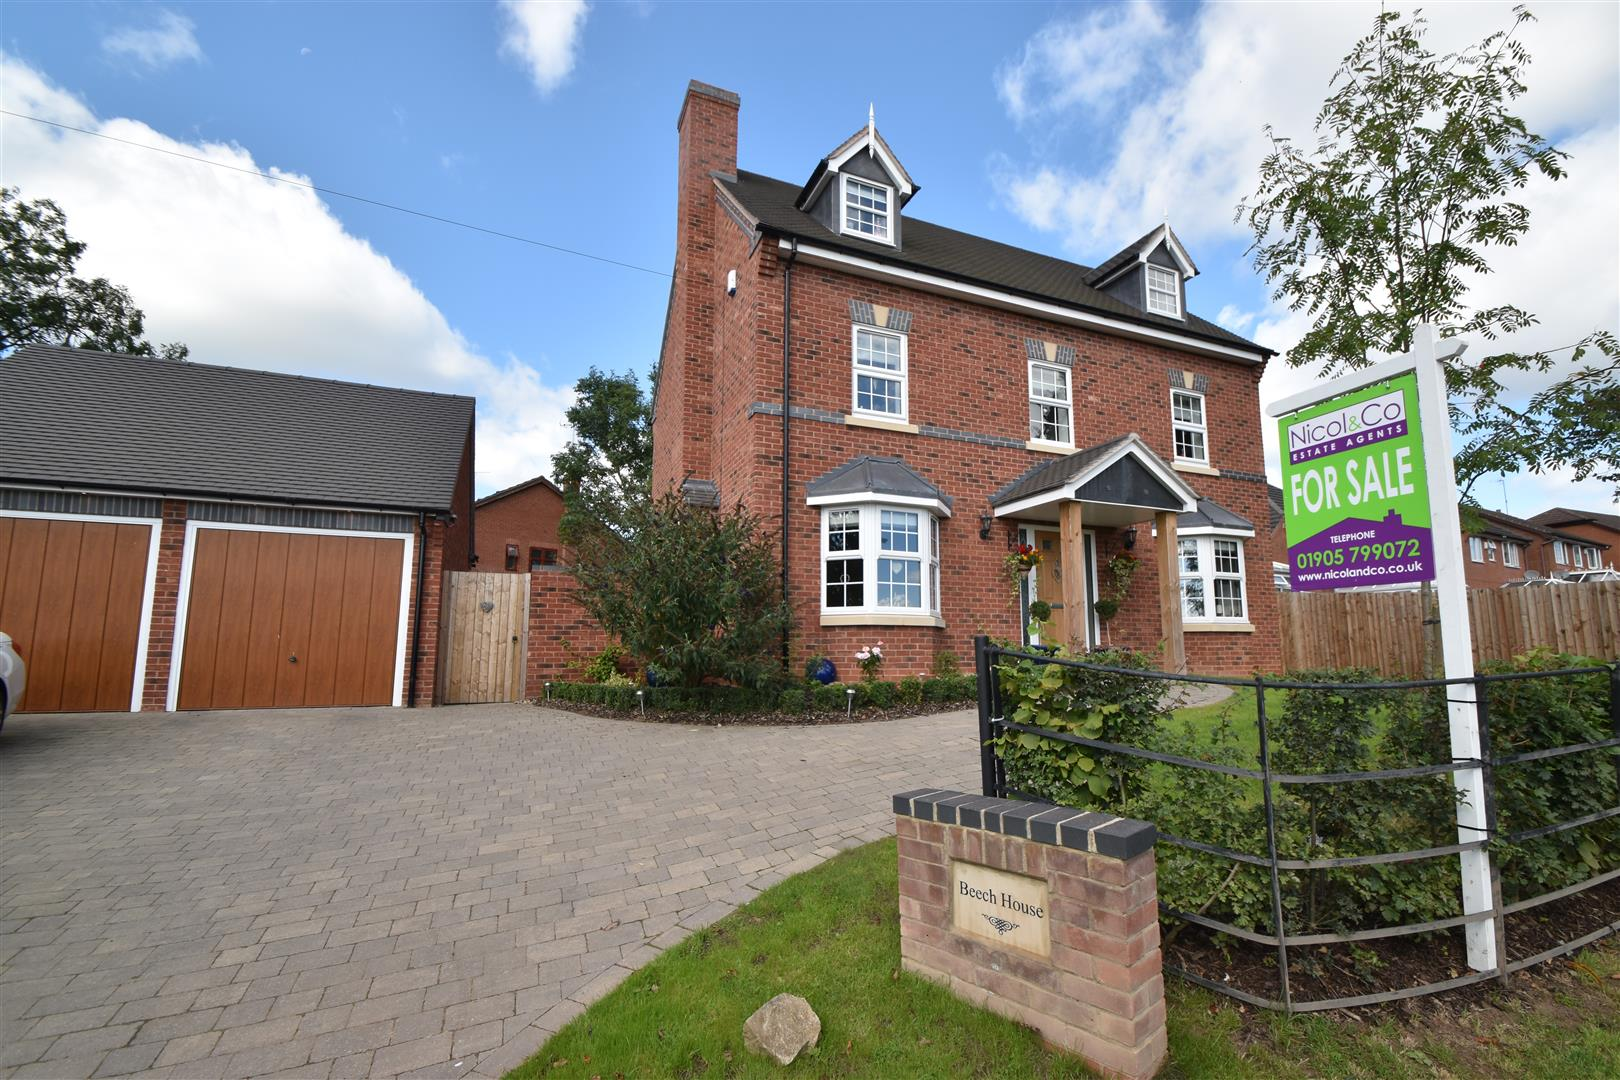 5 Bedrooms Detached House for sale in Tagwell Road, Droitwich Spa